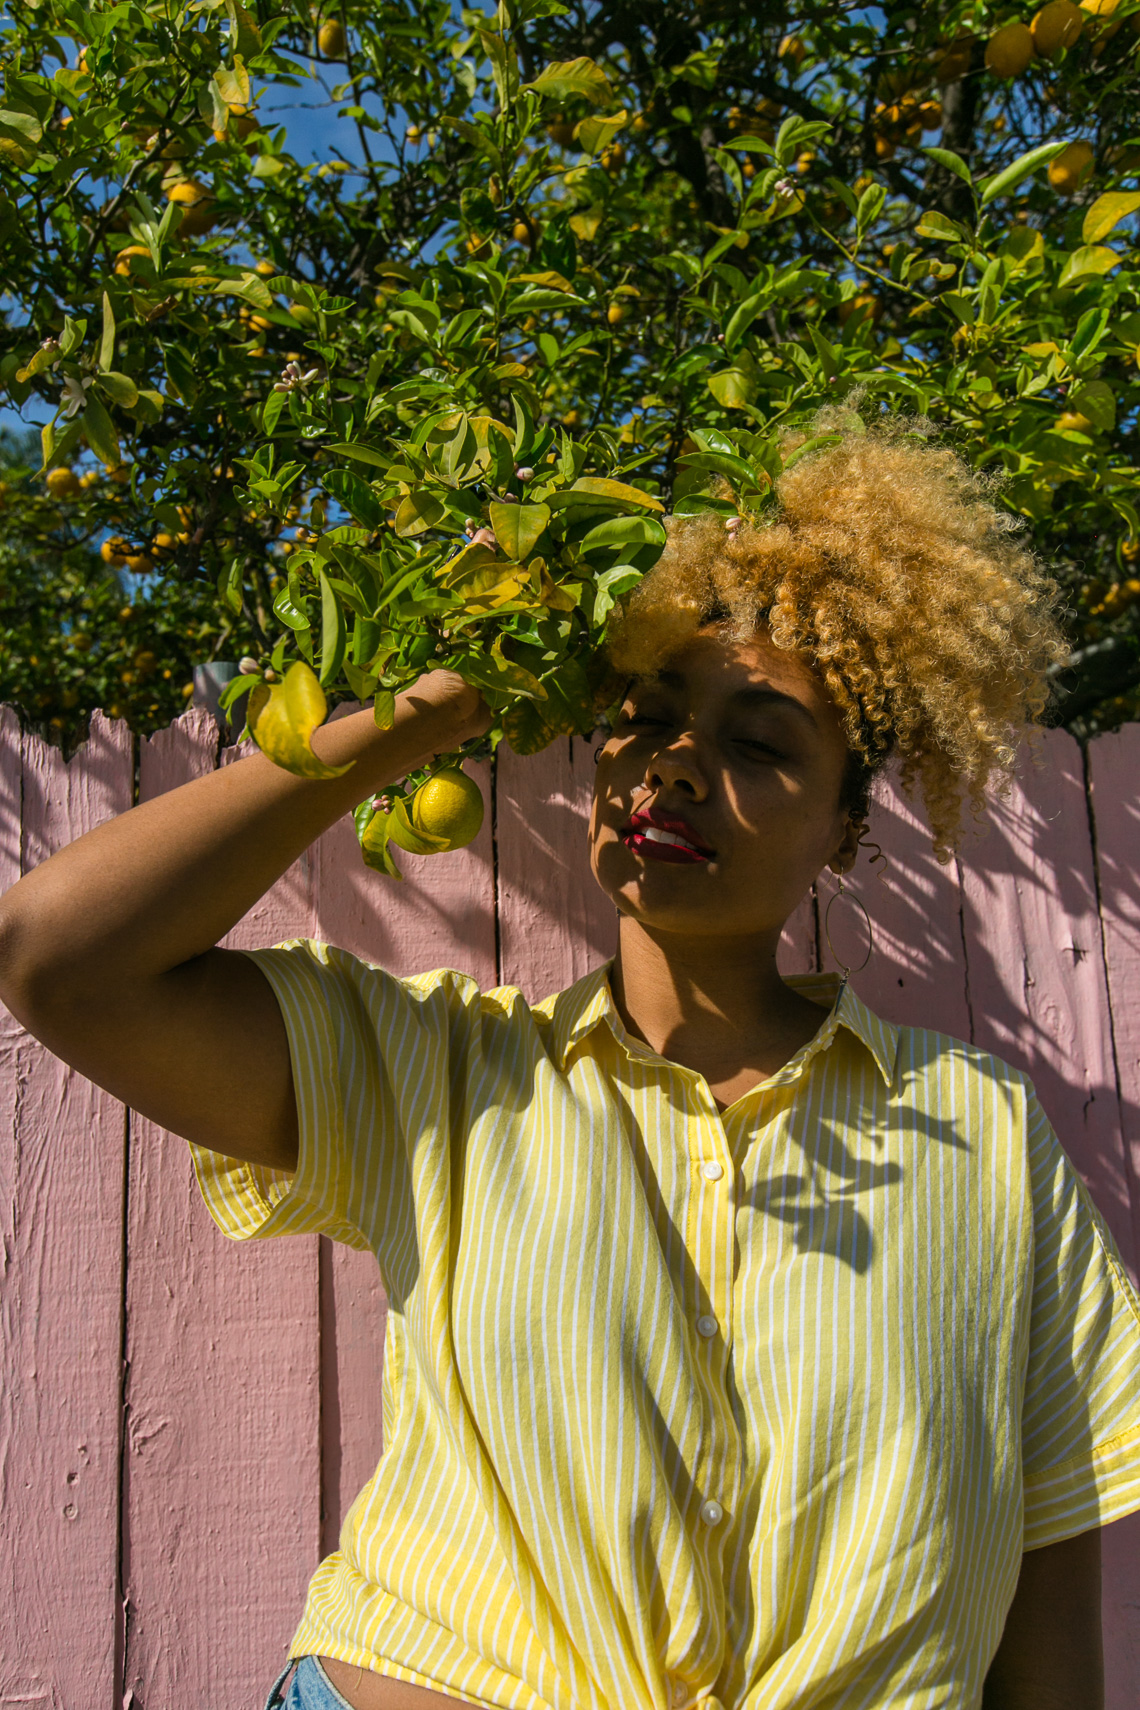 lemon tree-shadow play-yellow shirt-model-wear who you are-h&m shirt-pink fence